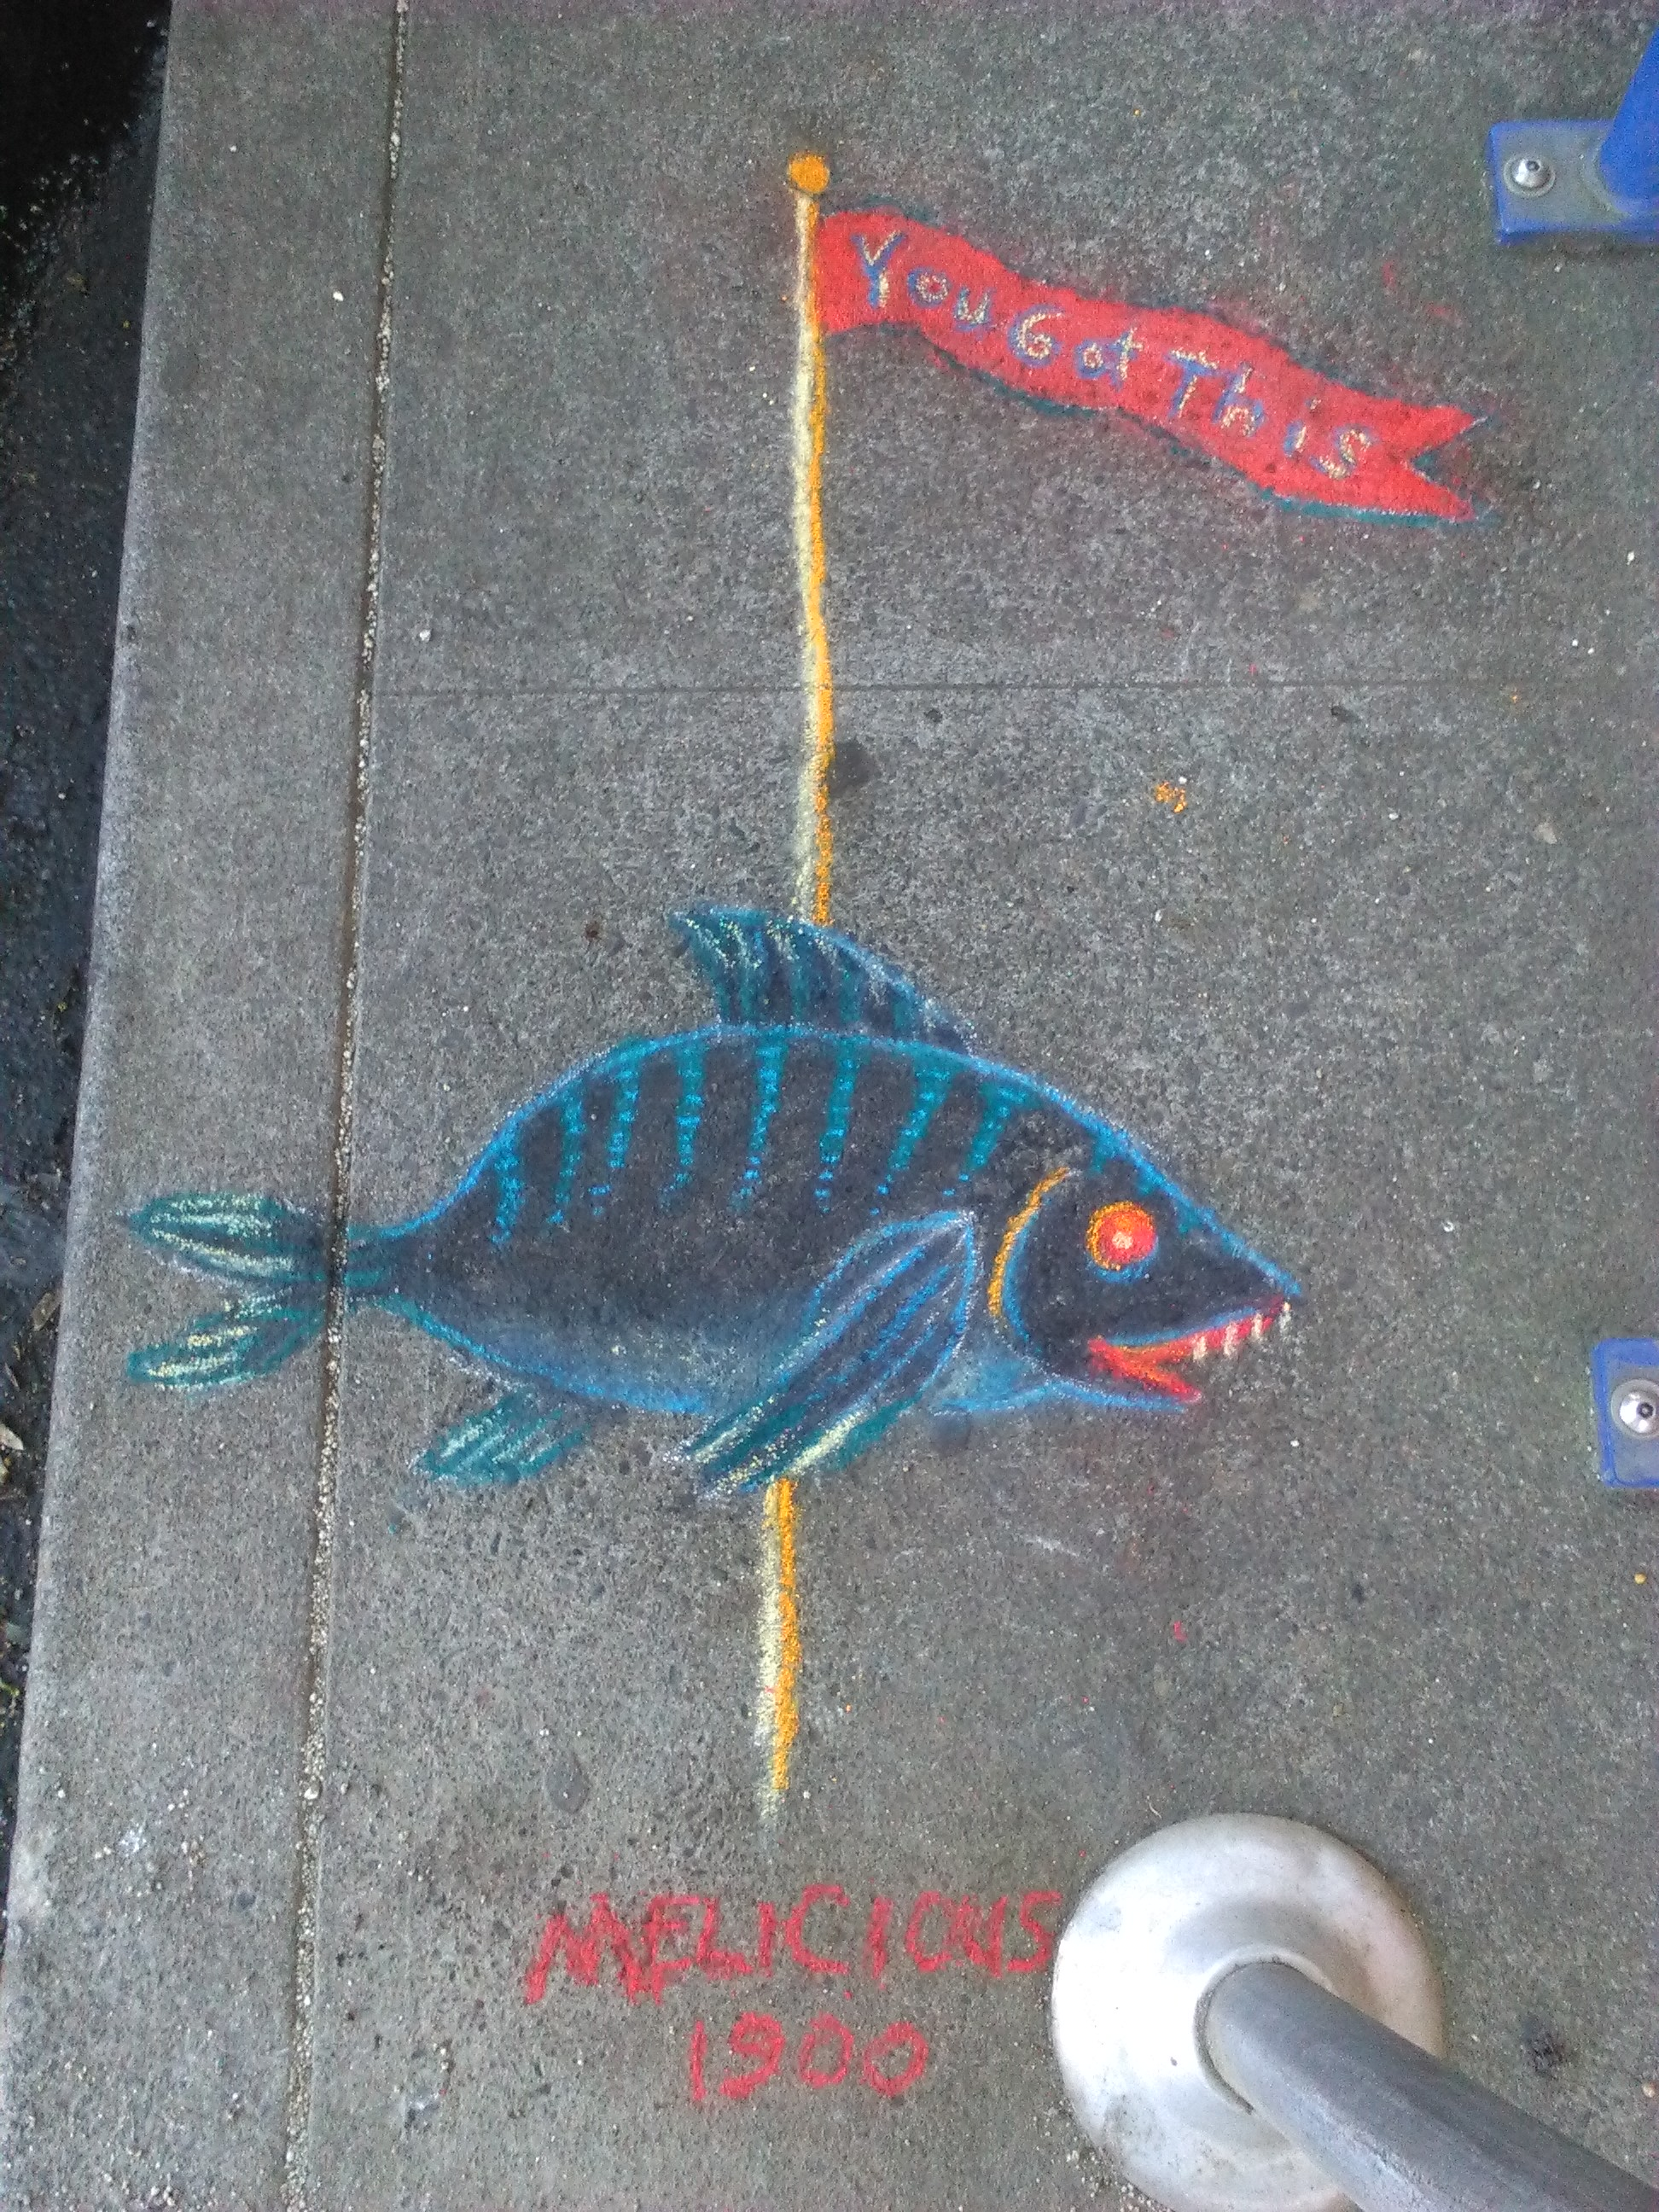 The 3rd fish drawing to let you know you're doing well...in fact...you got this! Near SW 2nd & Ash.